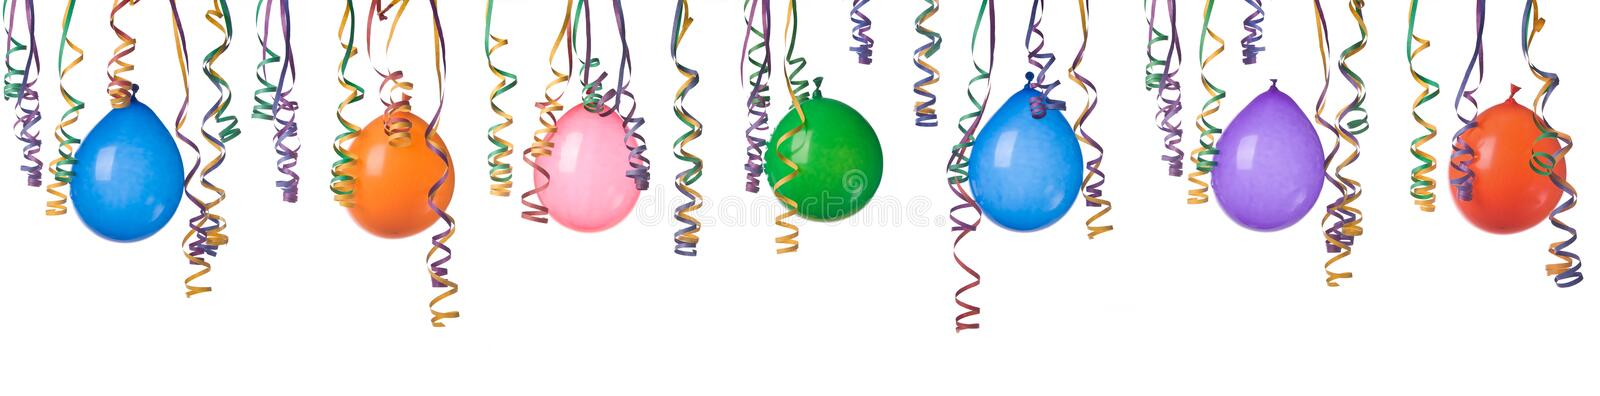 Balloons and confetti royalty free stock image